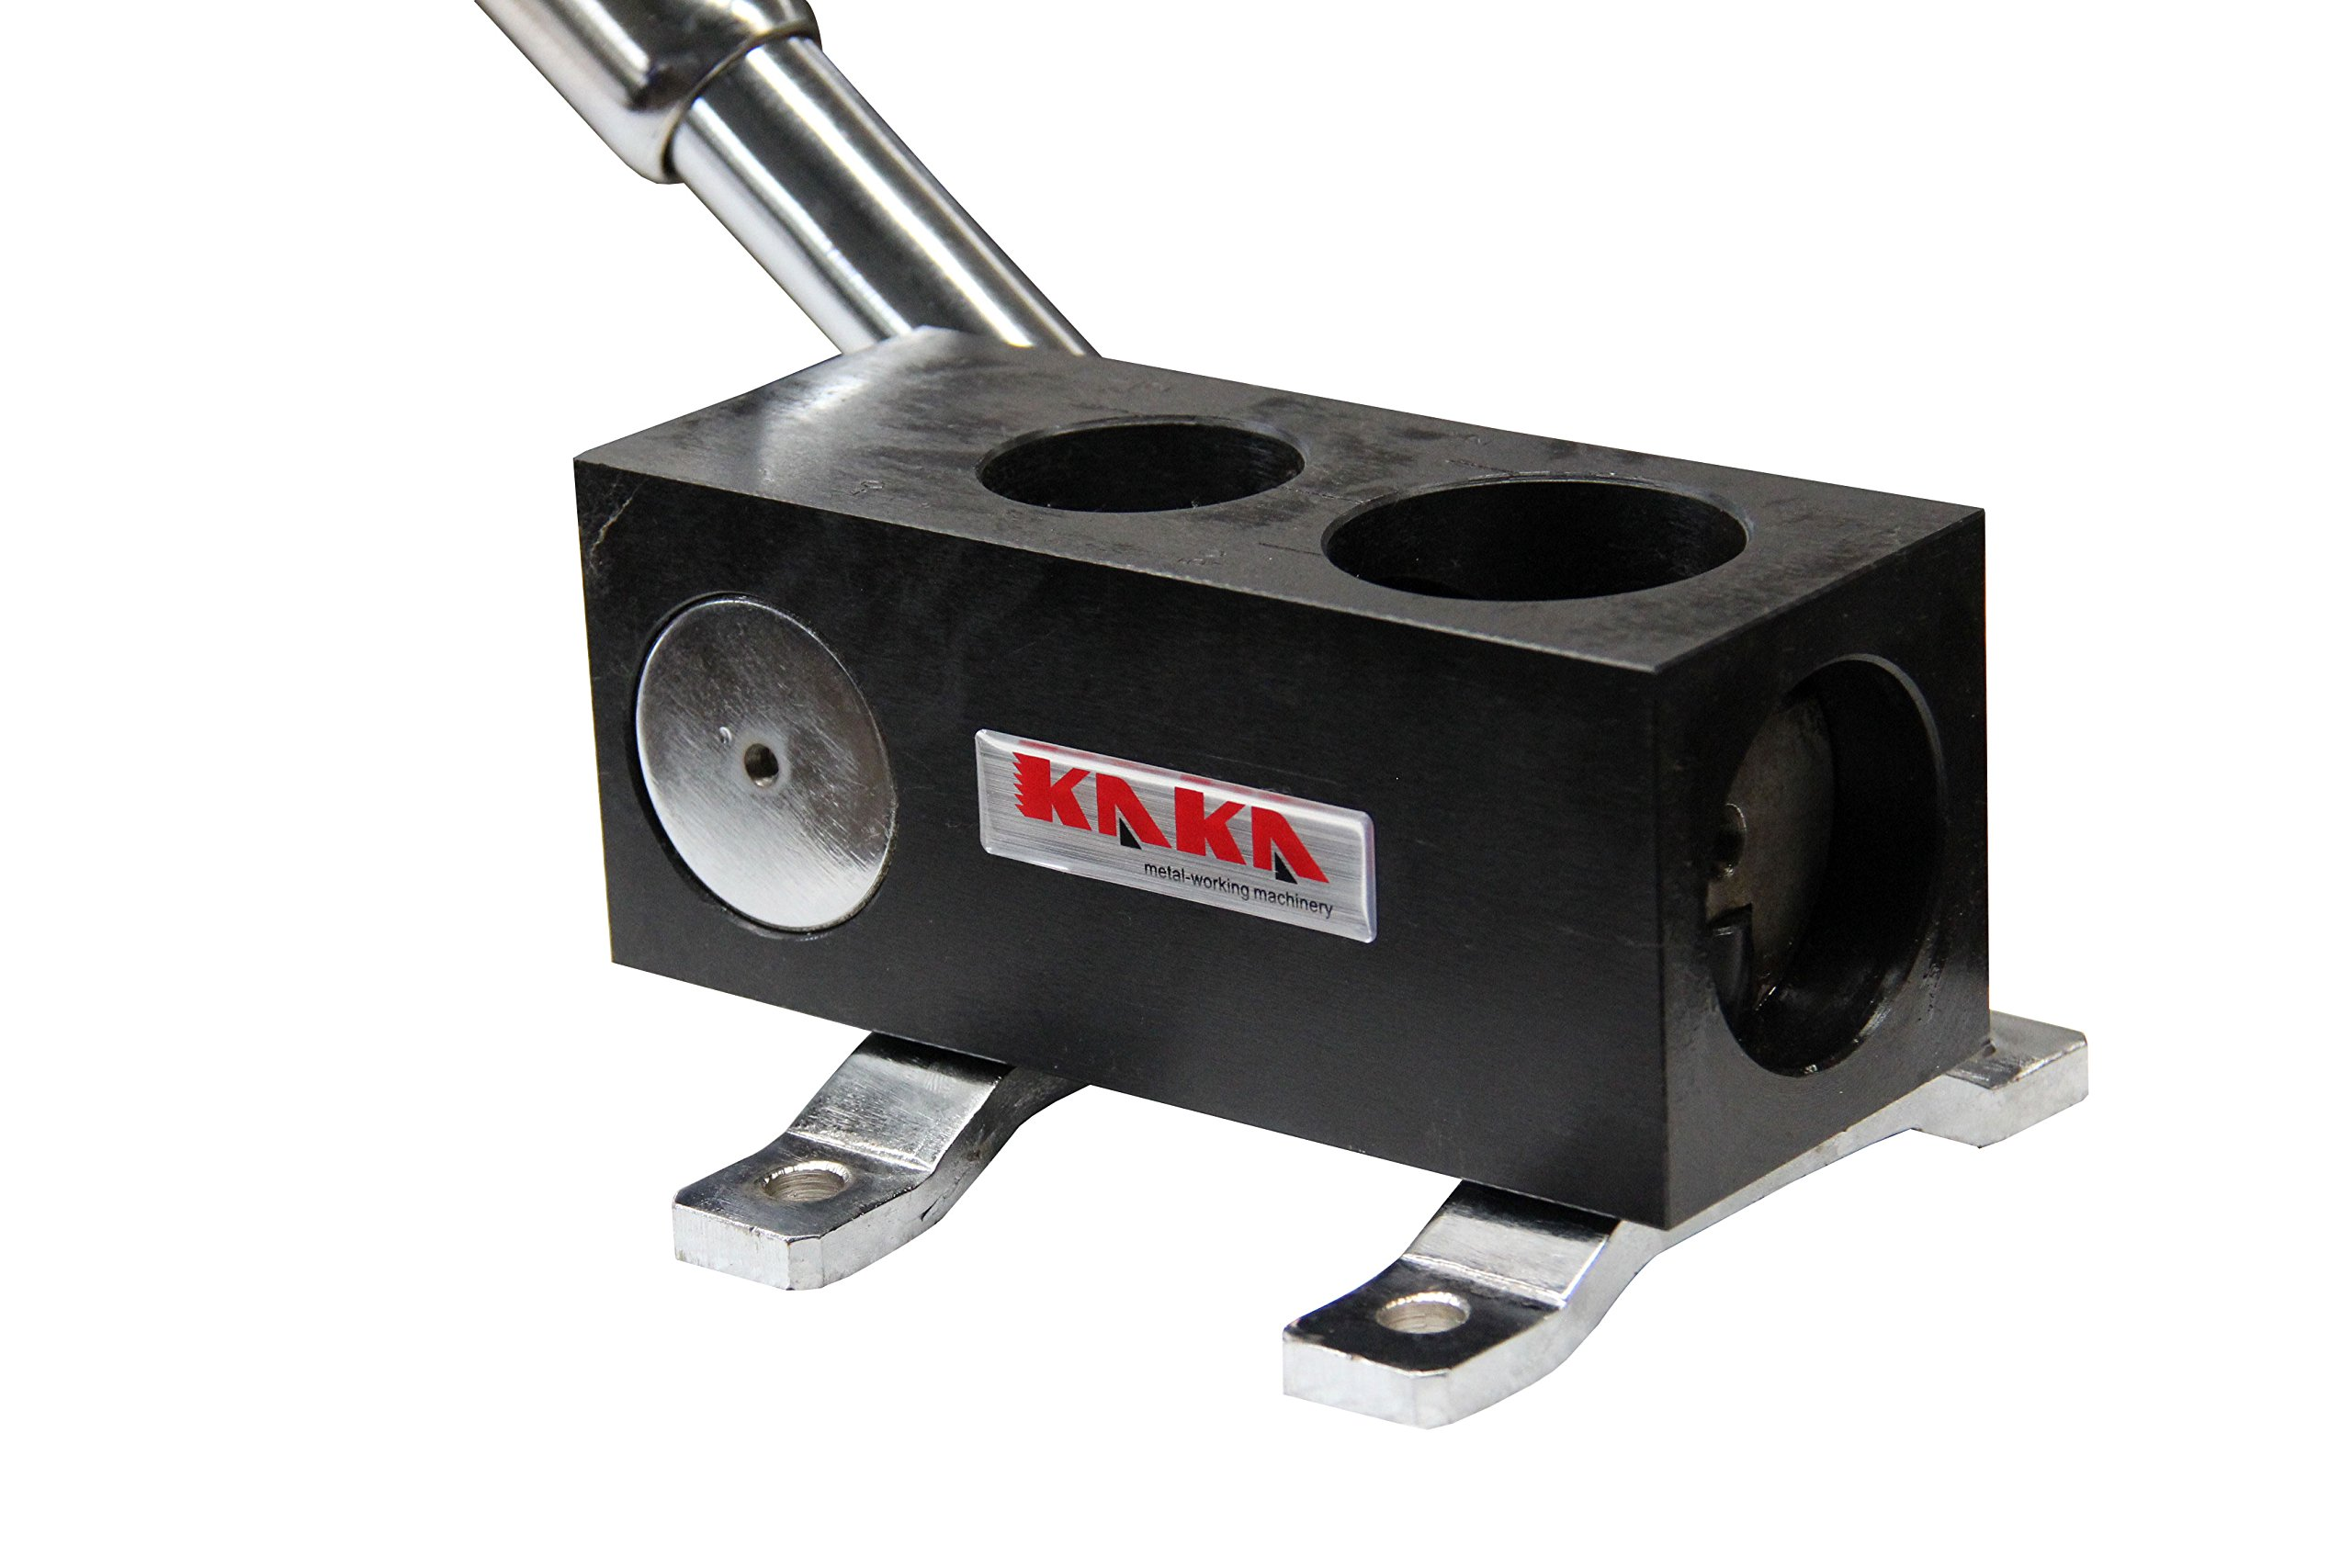 KAKA Industrial RA-3 Manual Tube Notcher, 1-1/2'', 2'' Light Weight, Solid Construction Tubing Notcher by KAKA Industrial